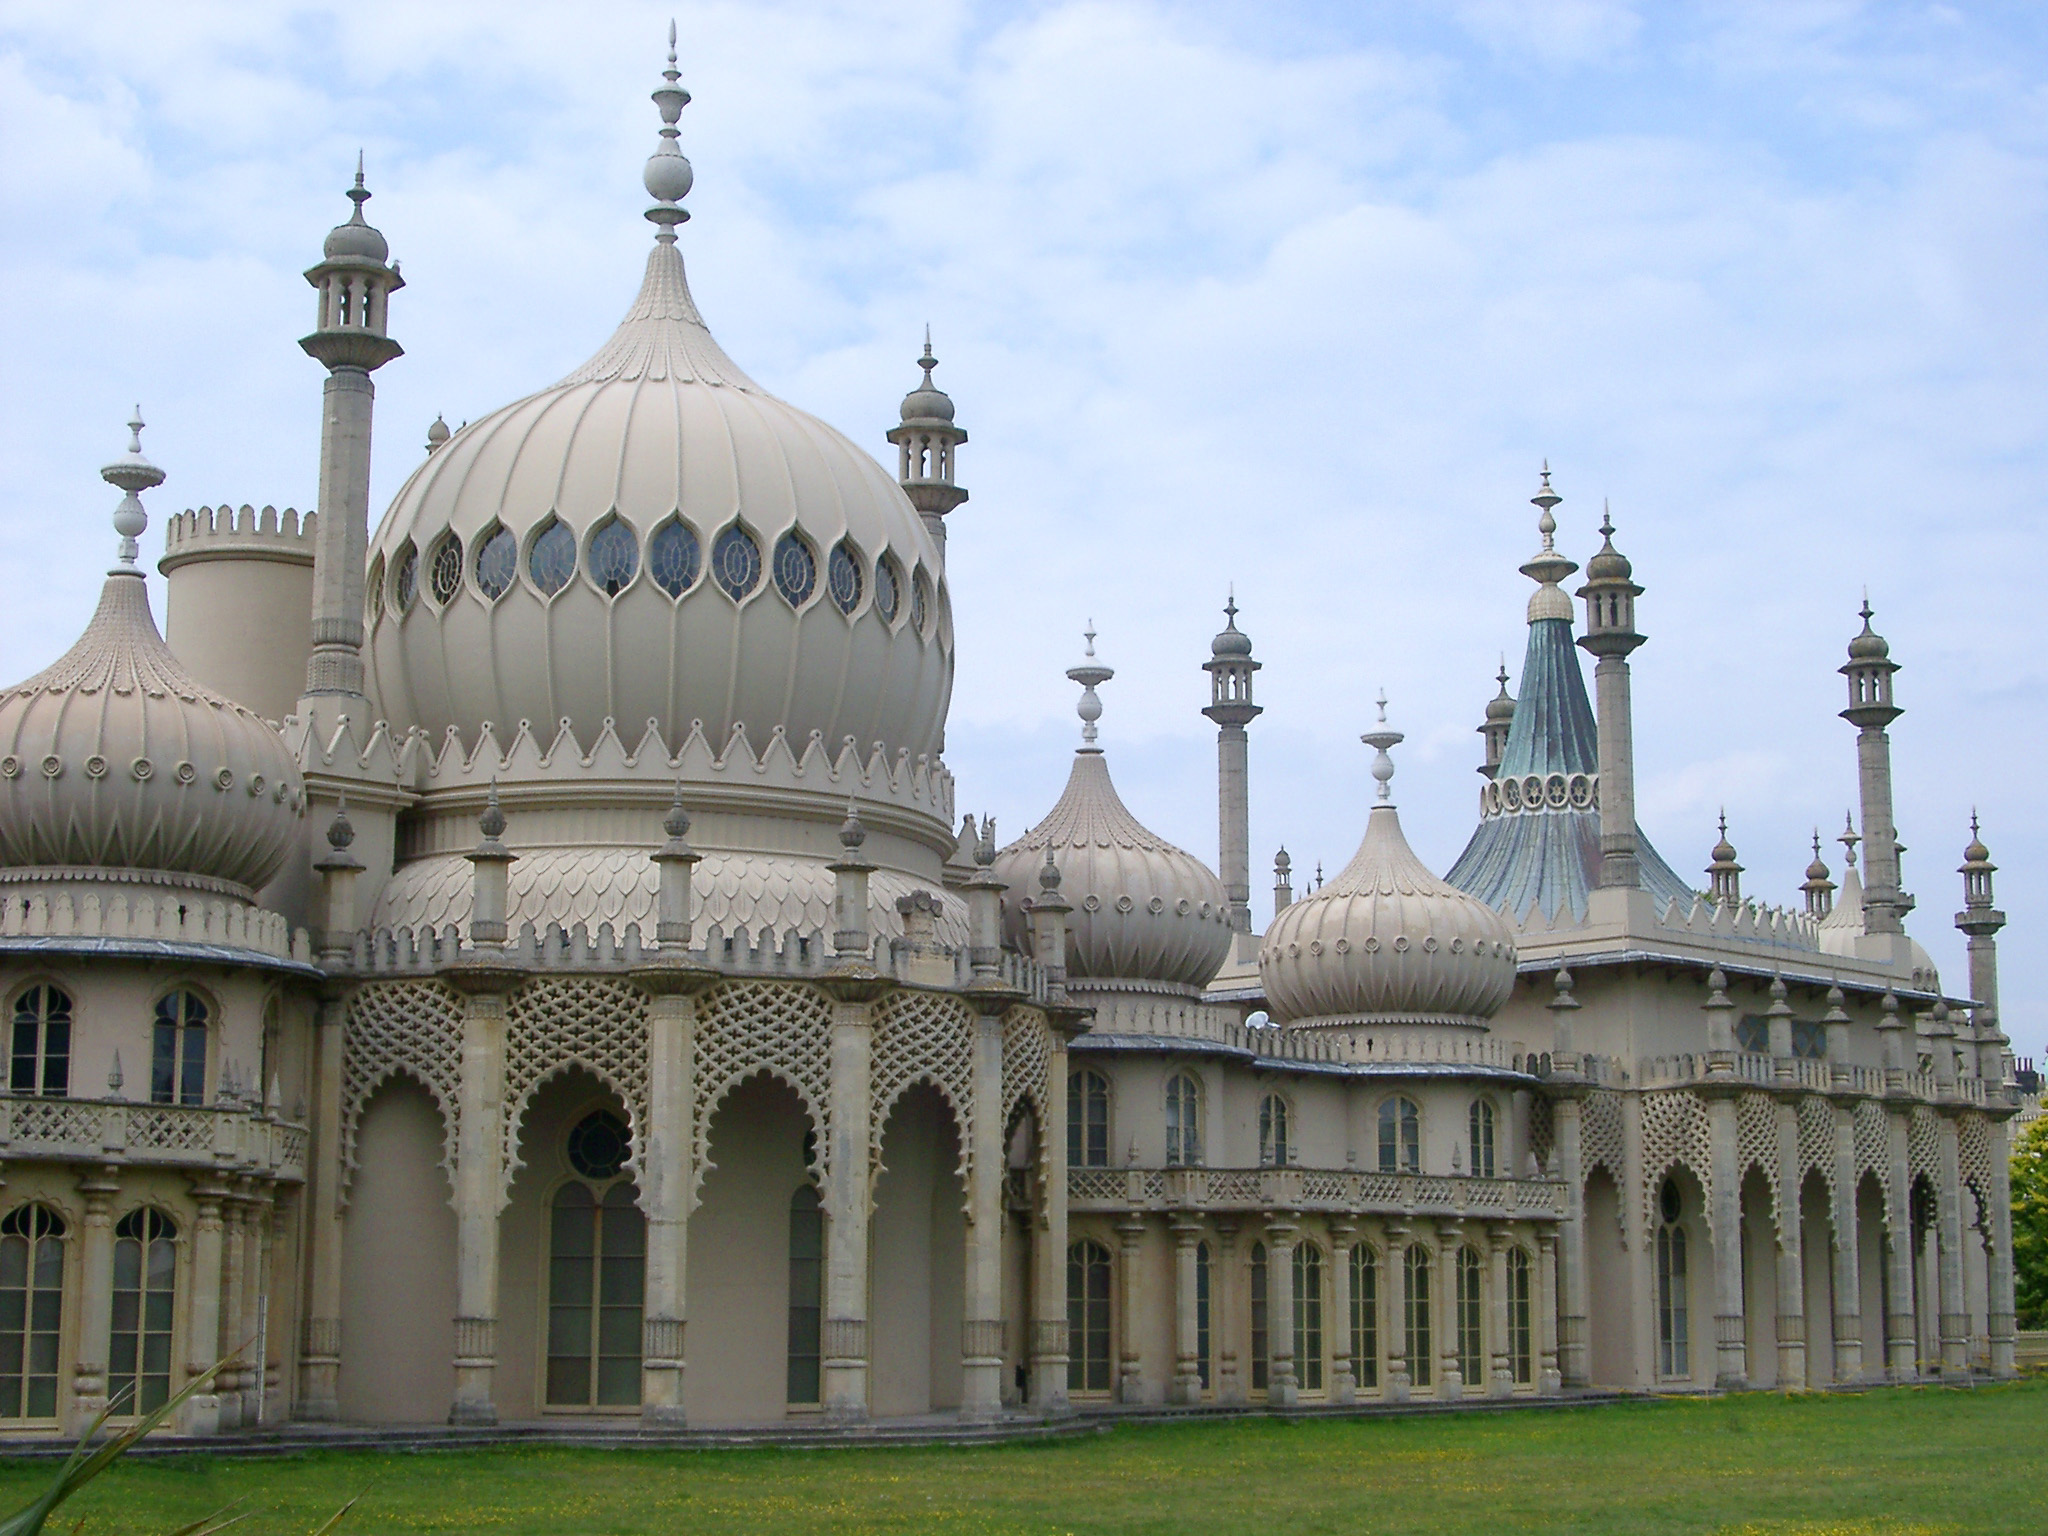 Free stock photo of front view of architectural royal for The brighton